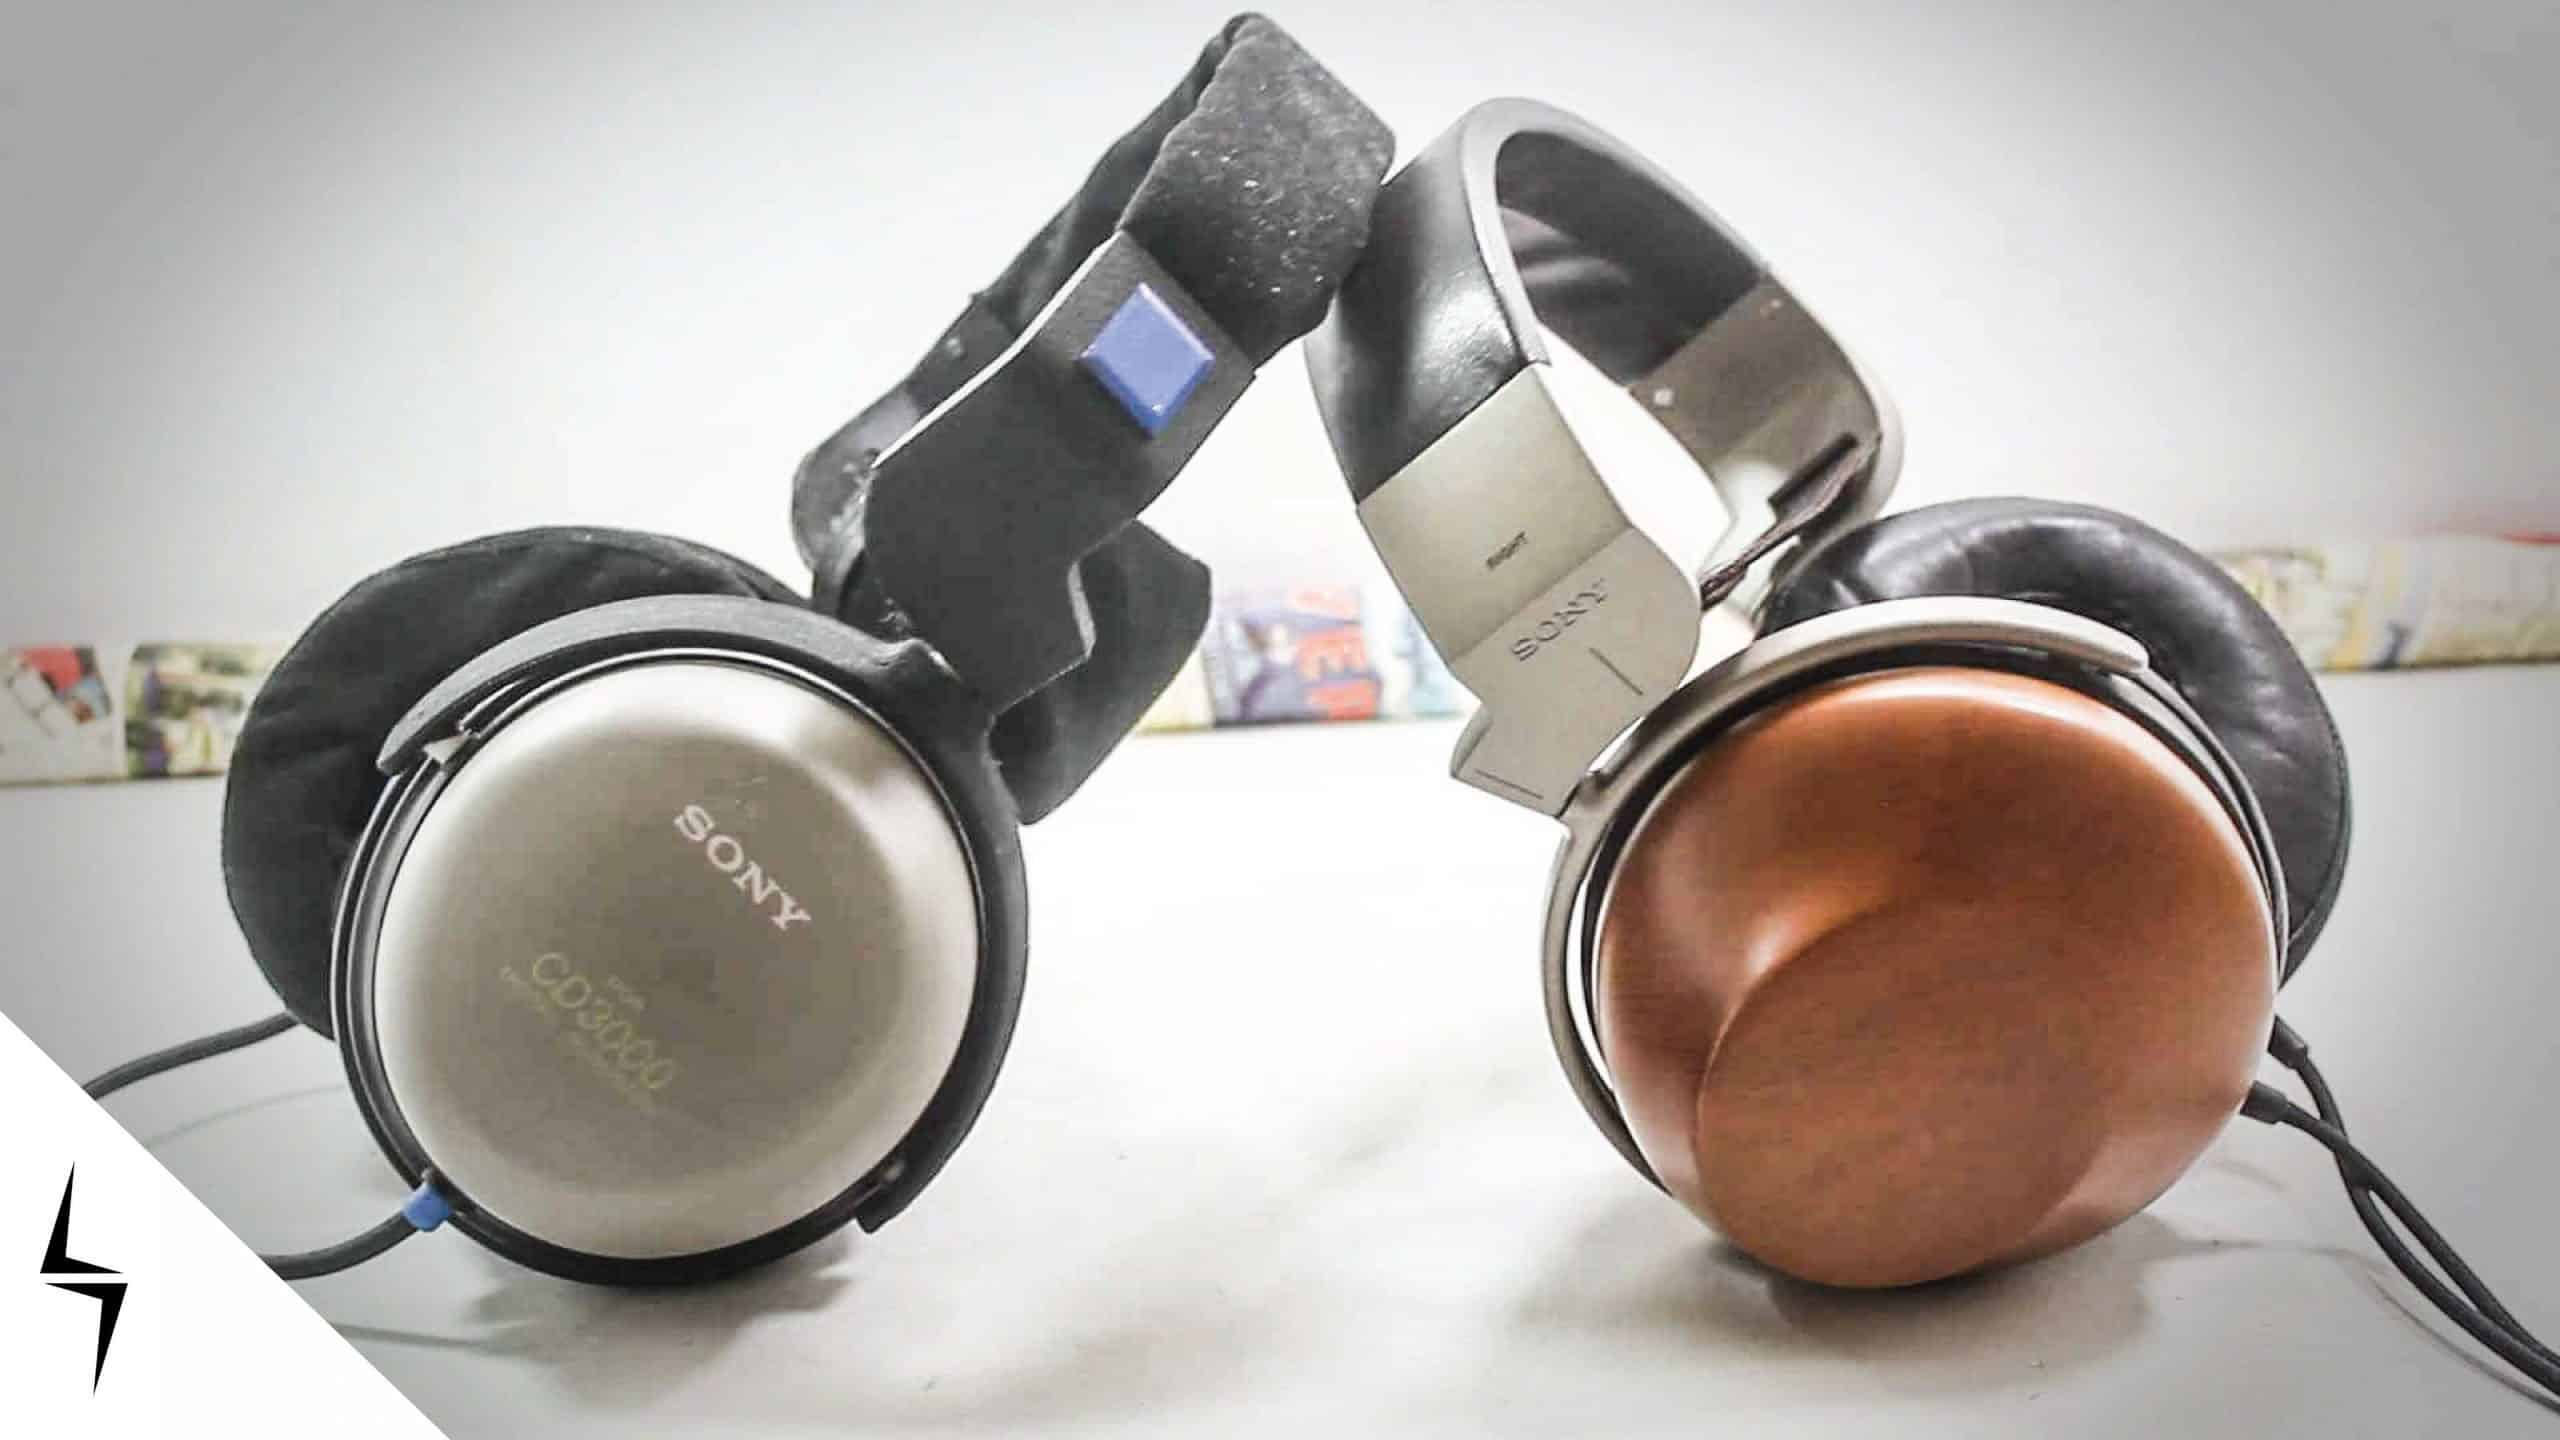 Sony Most Expensive Headphone Brands - 20 Brands with Prices 2017